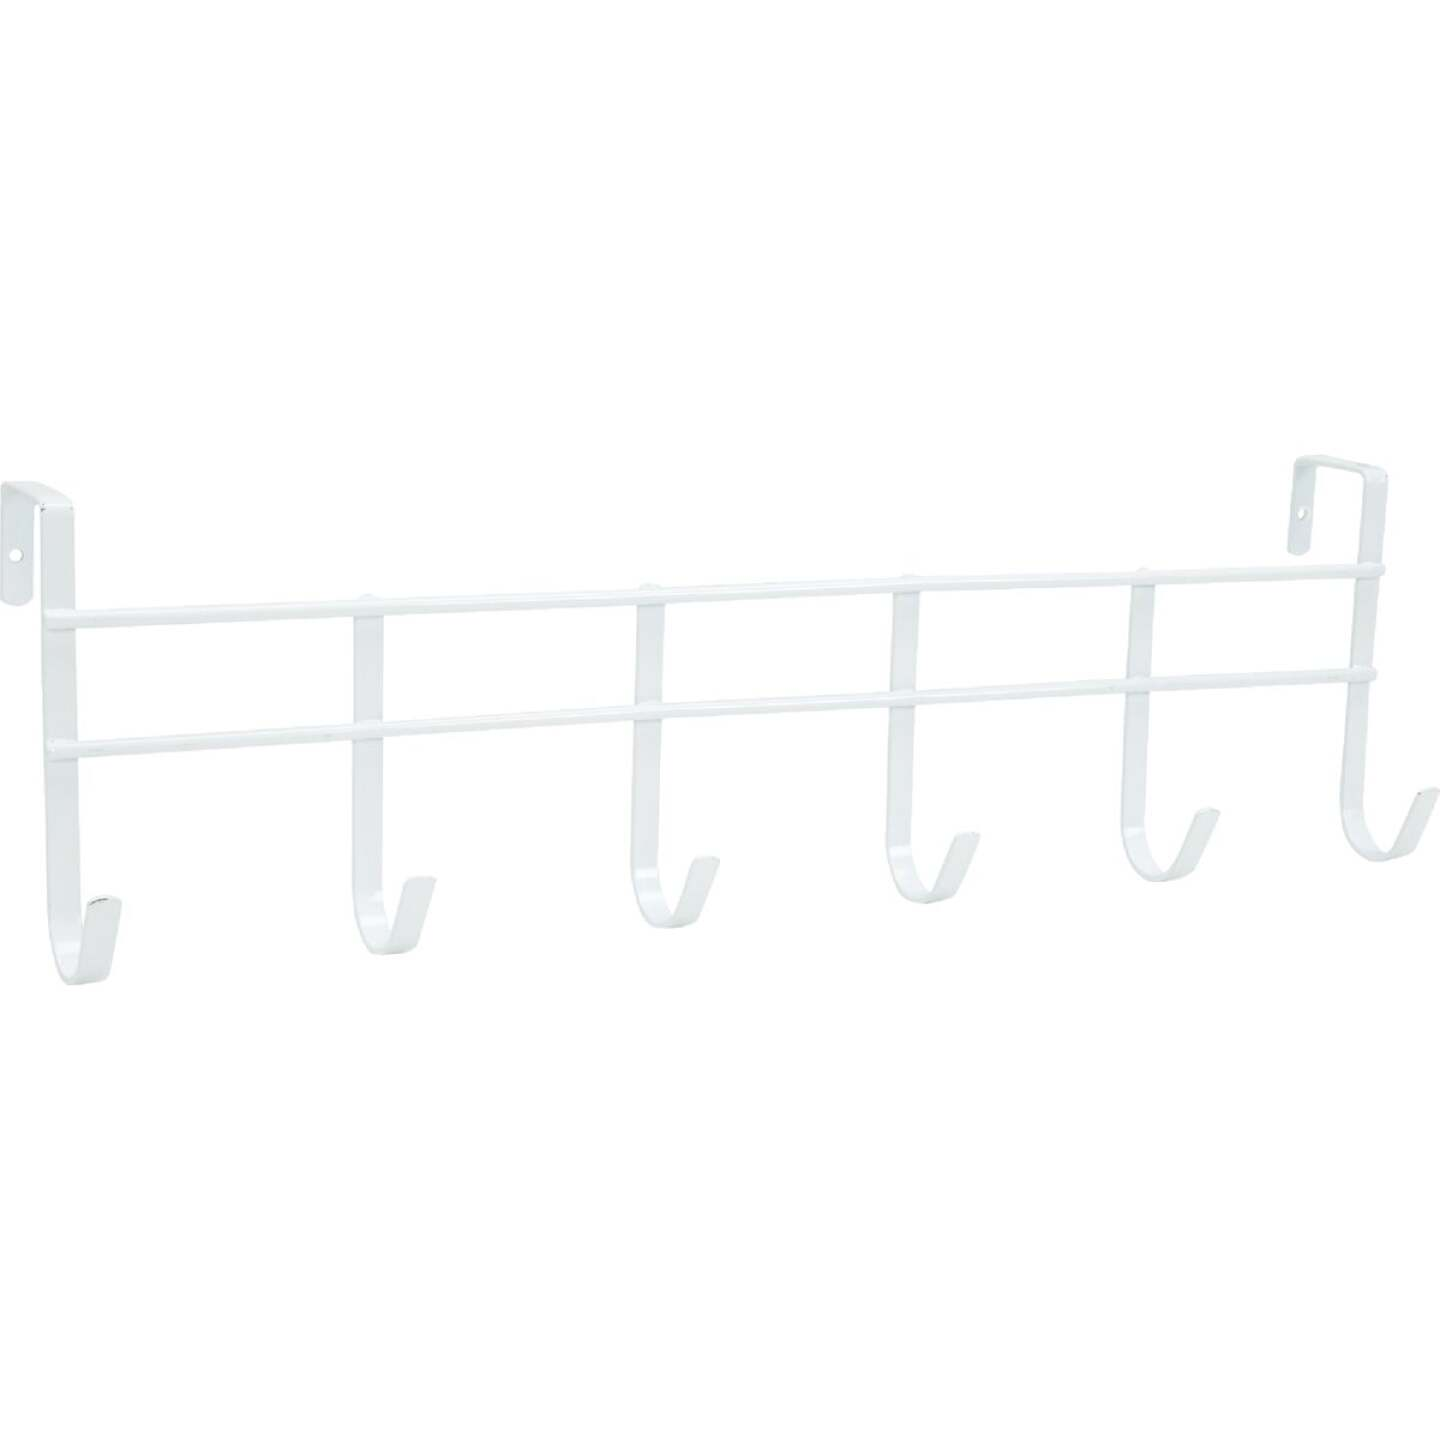 Spectrum White Over-The-Door Hook Rail with 6 Hooks Image 2